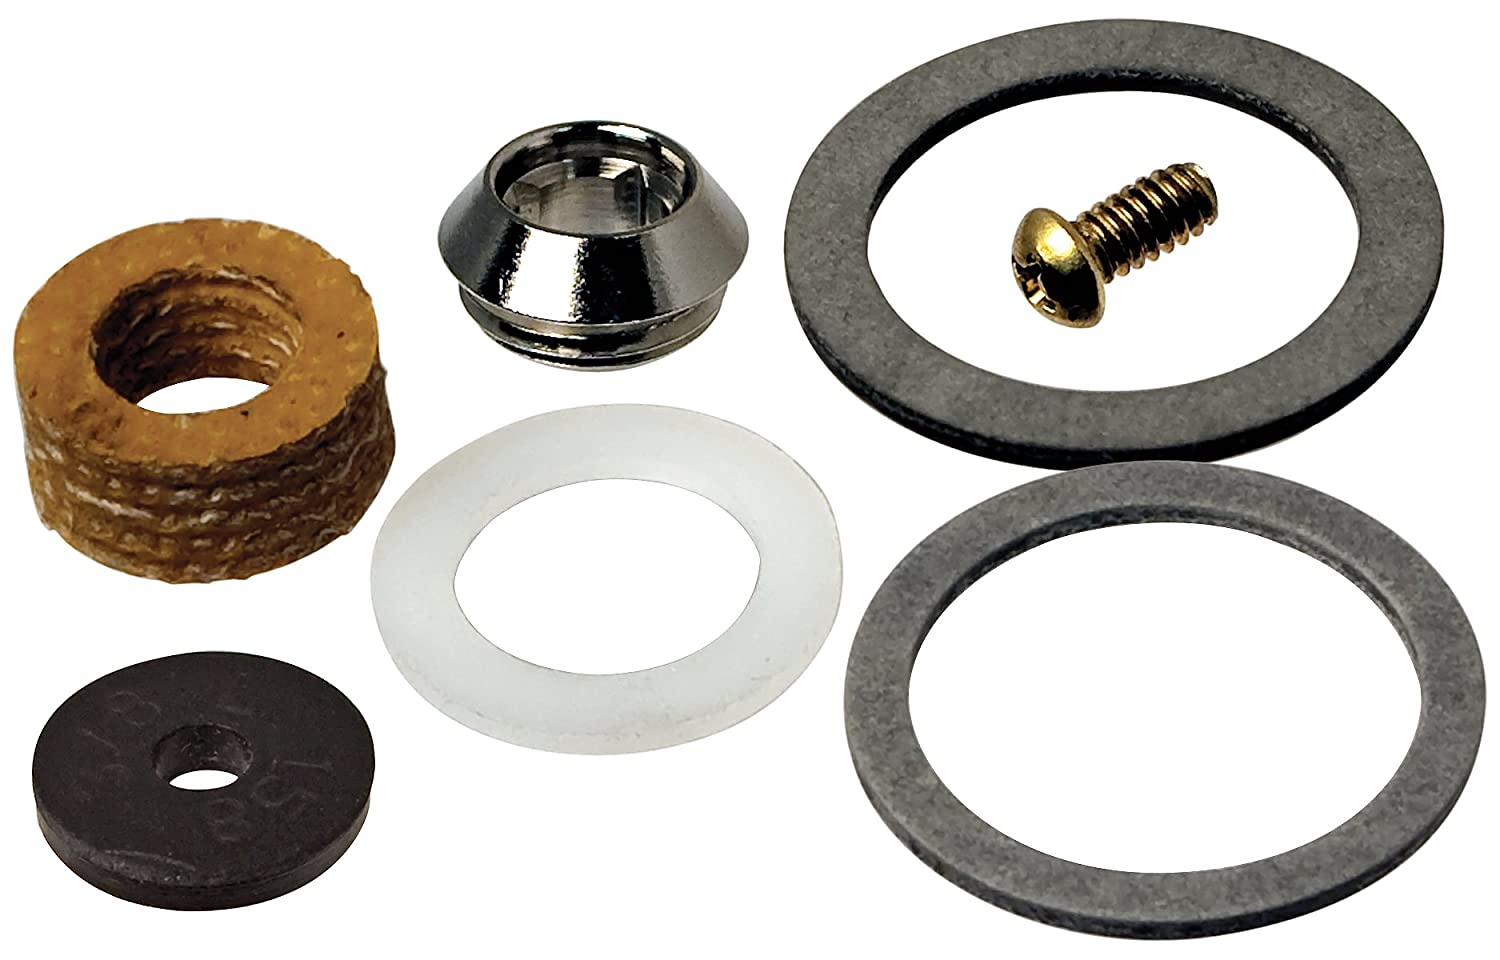 Price Pfister 131154 Washer Kit - Faucet Washers - Amazon.com